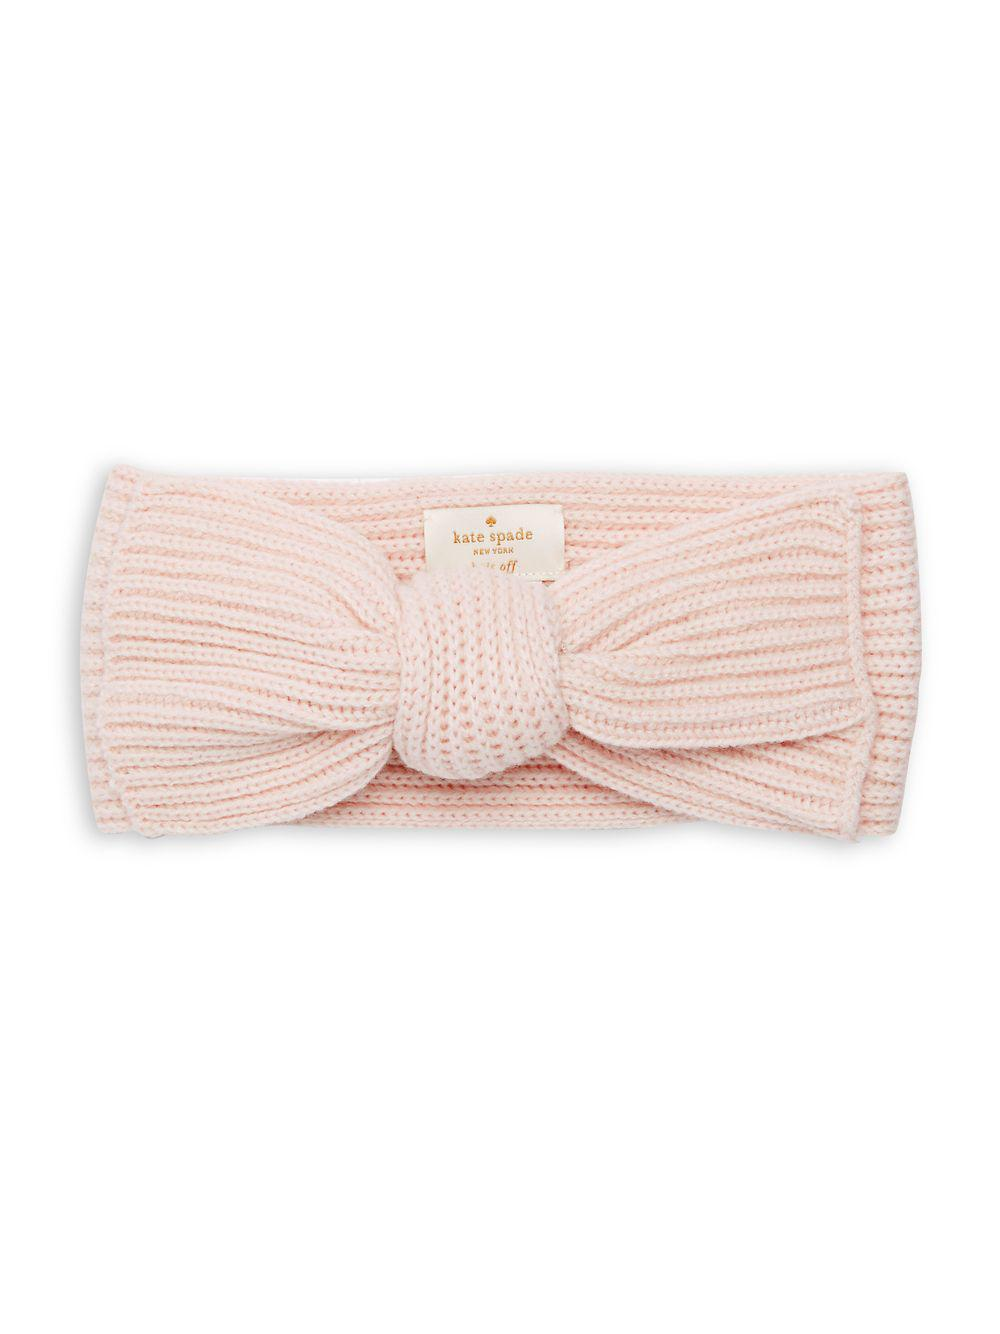 4a06382a264 Kate Spade - Pink Solid Bow Headband - Lyst. View fullscreen